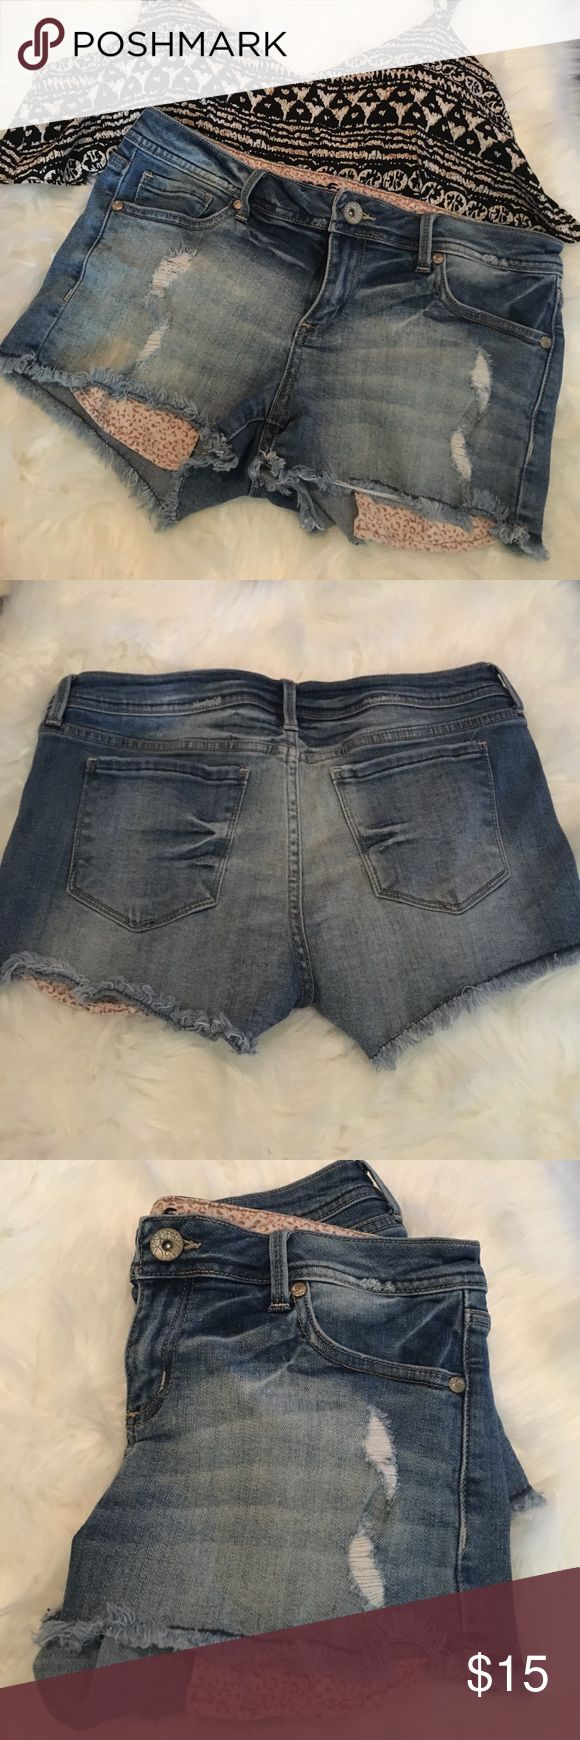 """Refuge jean shorts EUC size 6 (juniors) jean shorts. Fringe bottoms and cheetah print pockets that stick out. Measure approx. 8.5"""" in length. refuge Shorts Jean Shorts"""